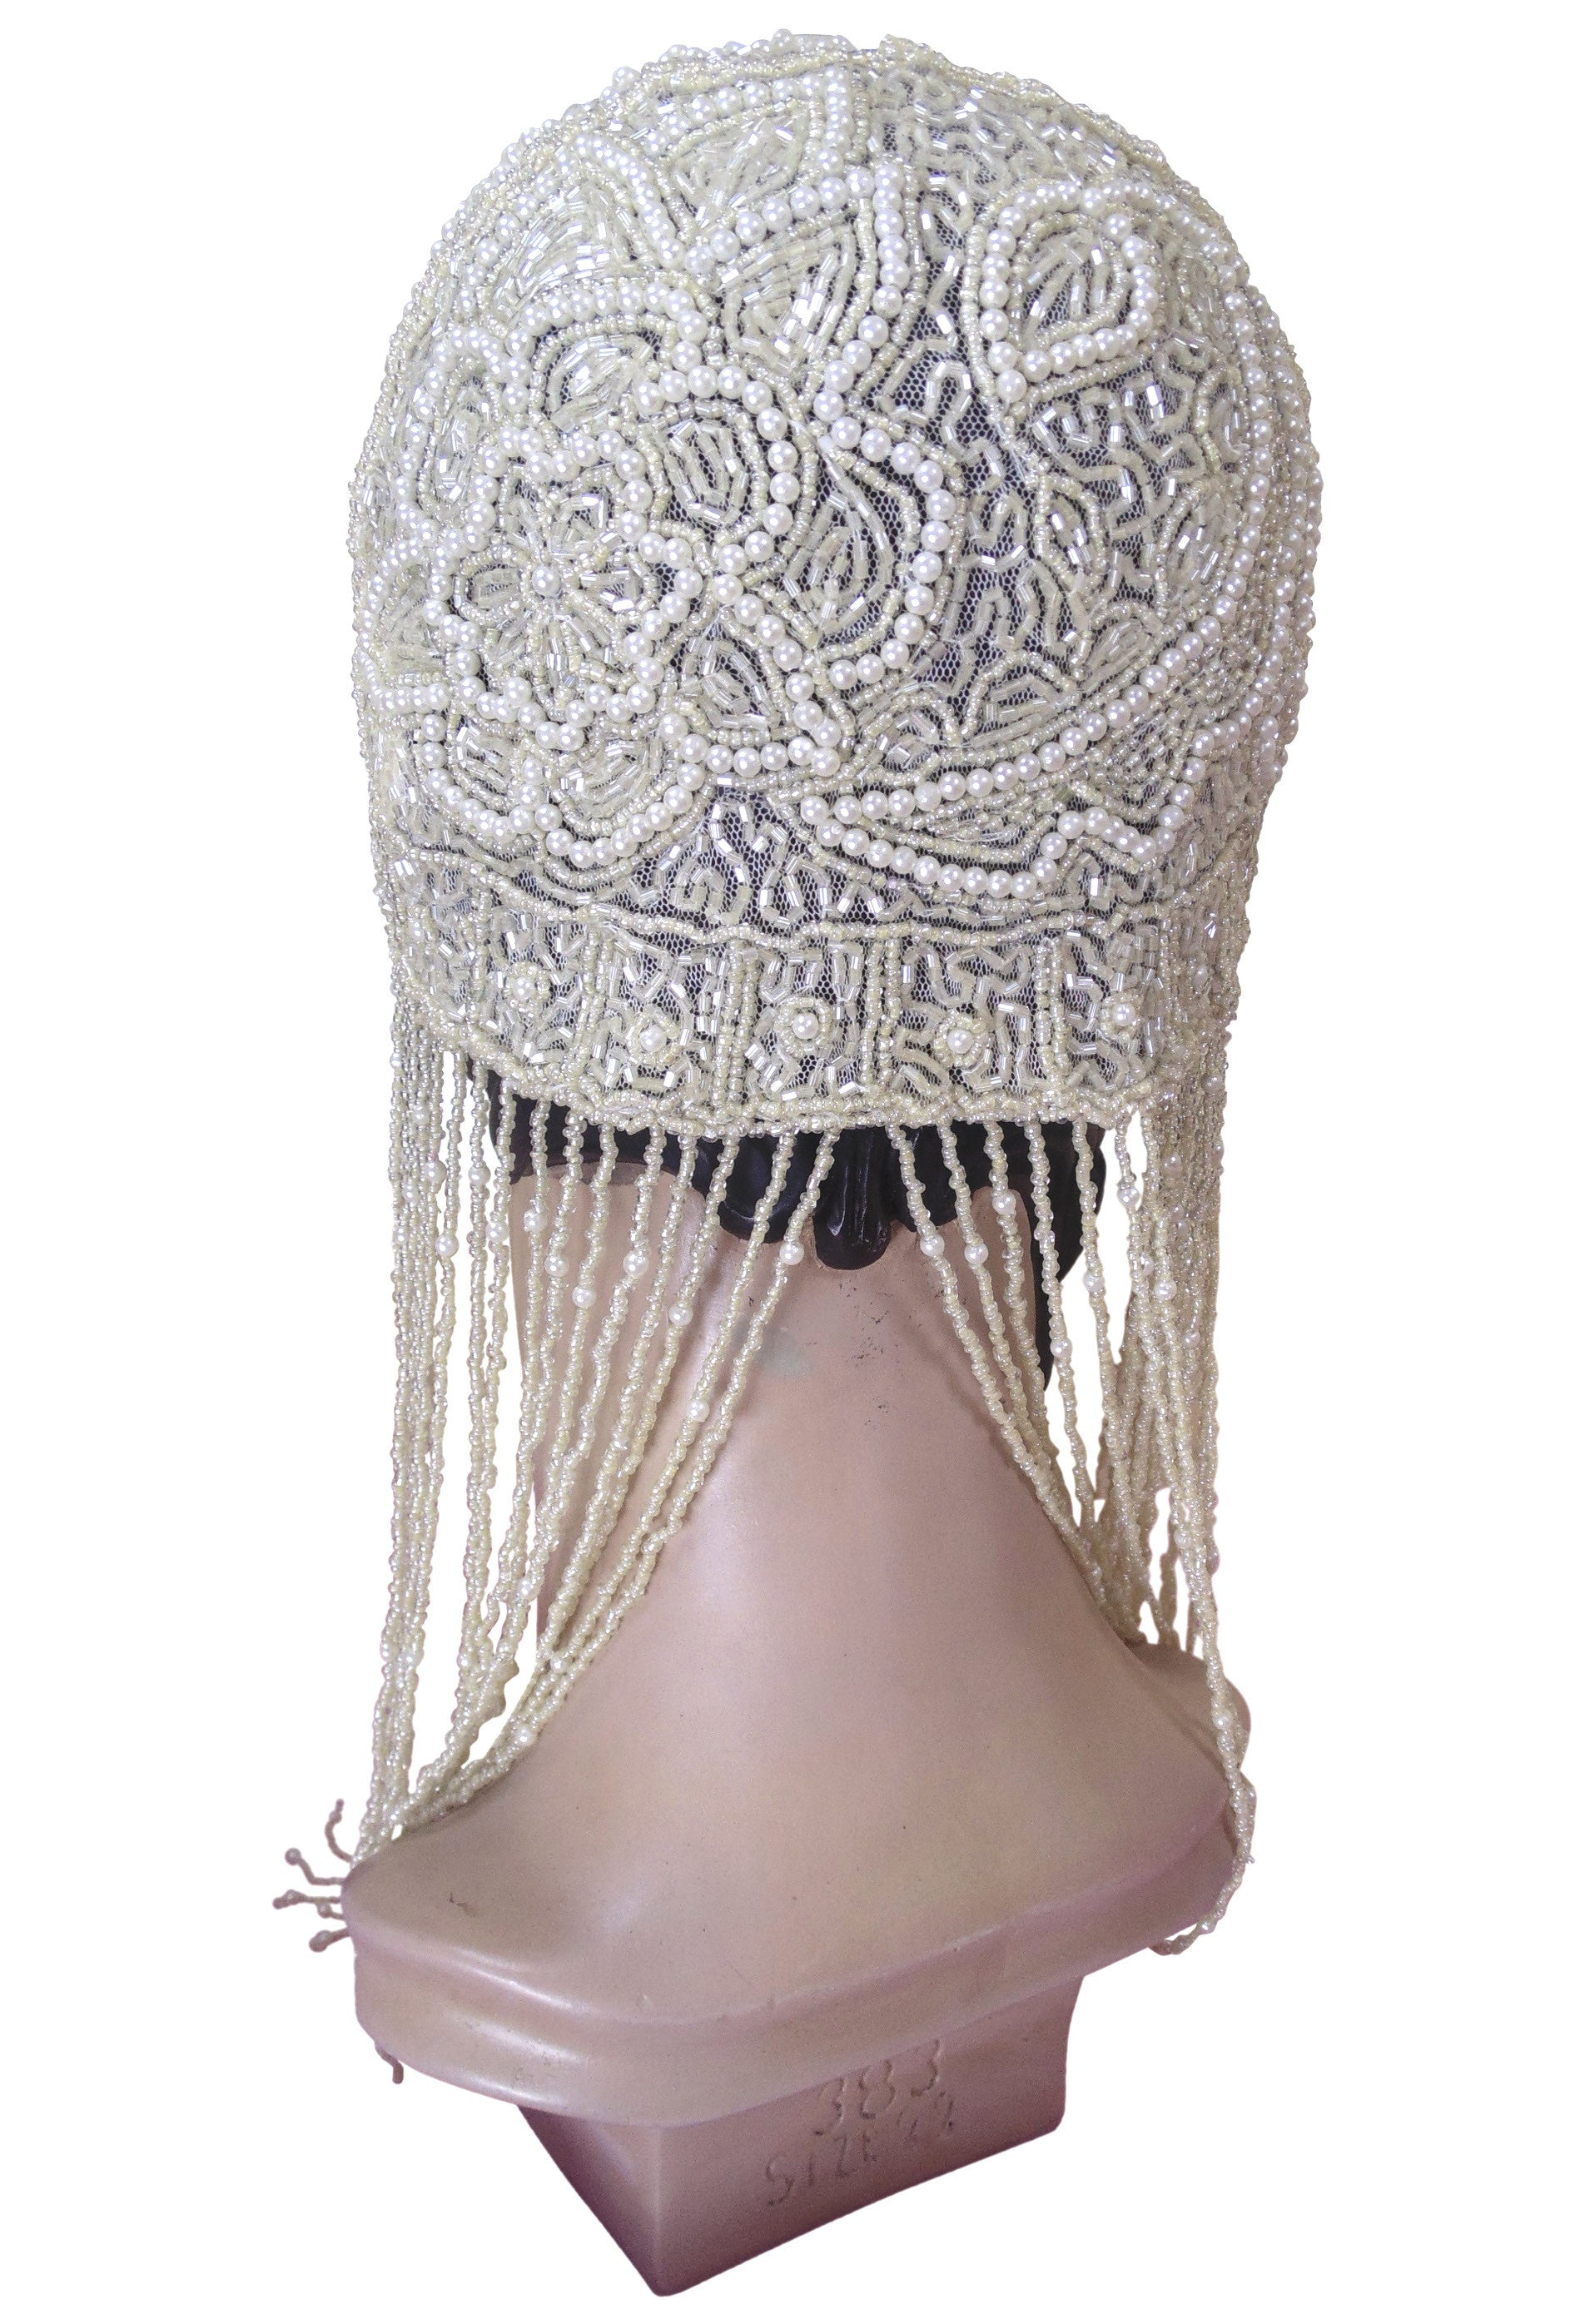 ... 1920s Hand Beaded Gatsby Flapper Wedding Bridal Cap   Long Fringe    Ivory Pearl   The